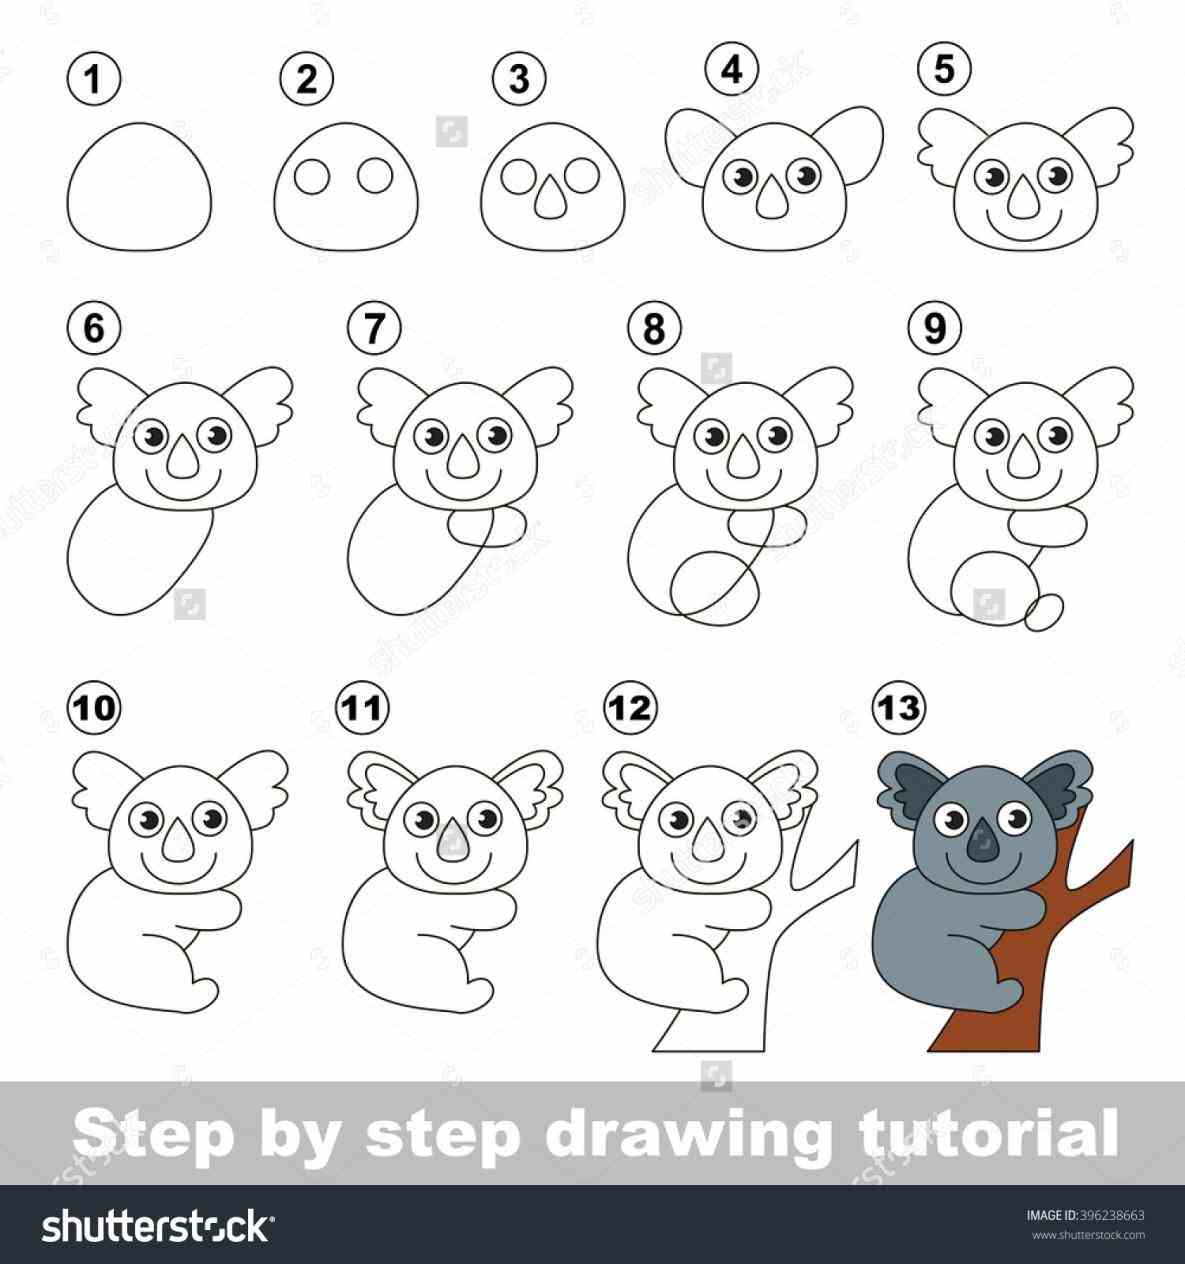 Cute Panda Drawing Step By Step At Getdrawings Com Free For